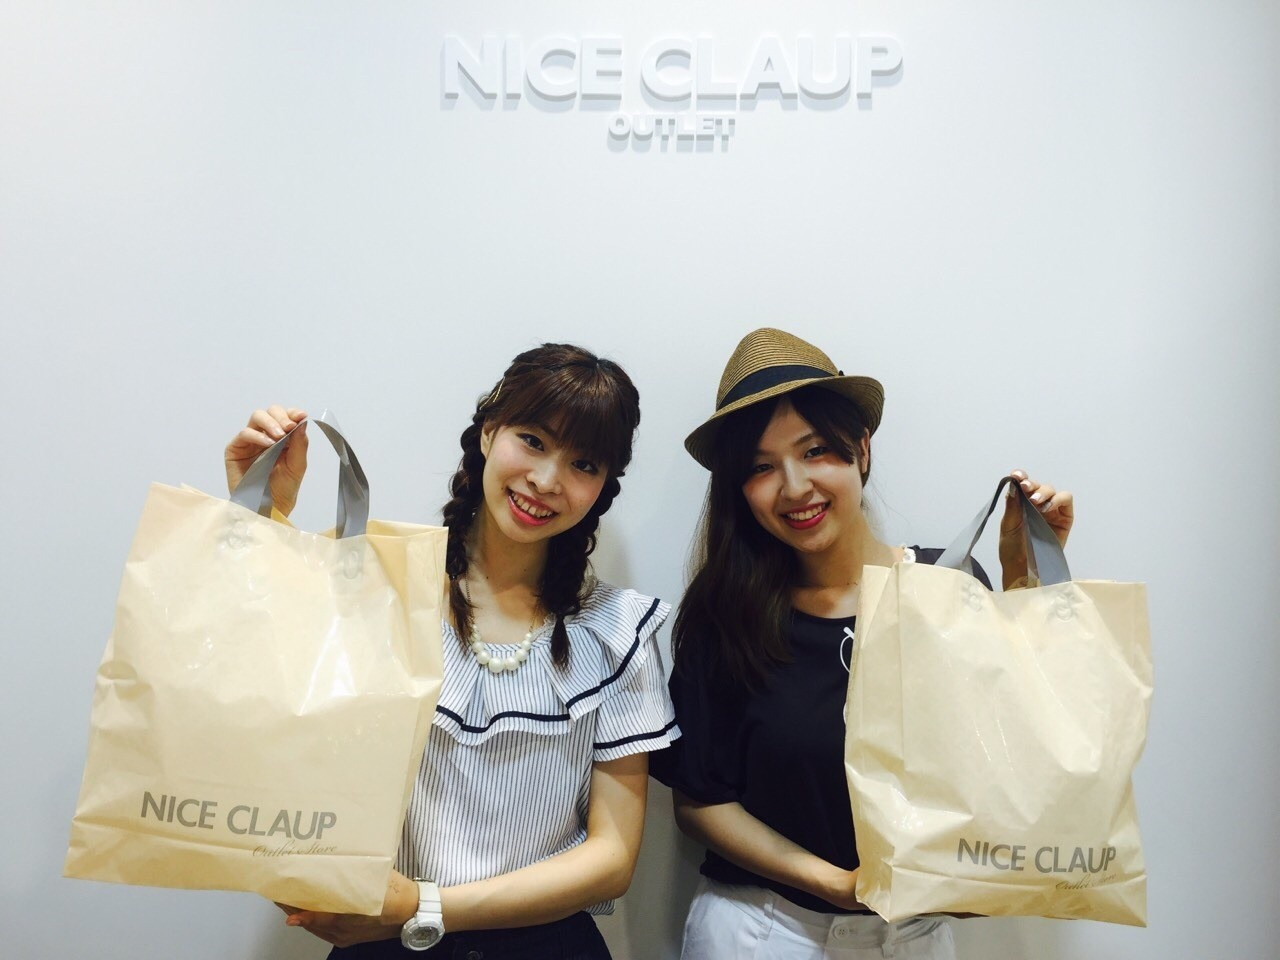 NICE CLAUP OUTLET(ナイスクラップアウトレット) 入間店 のアルバイト情報